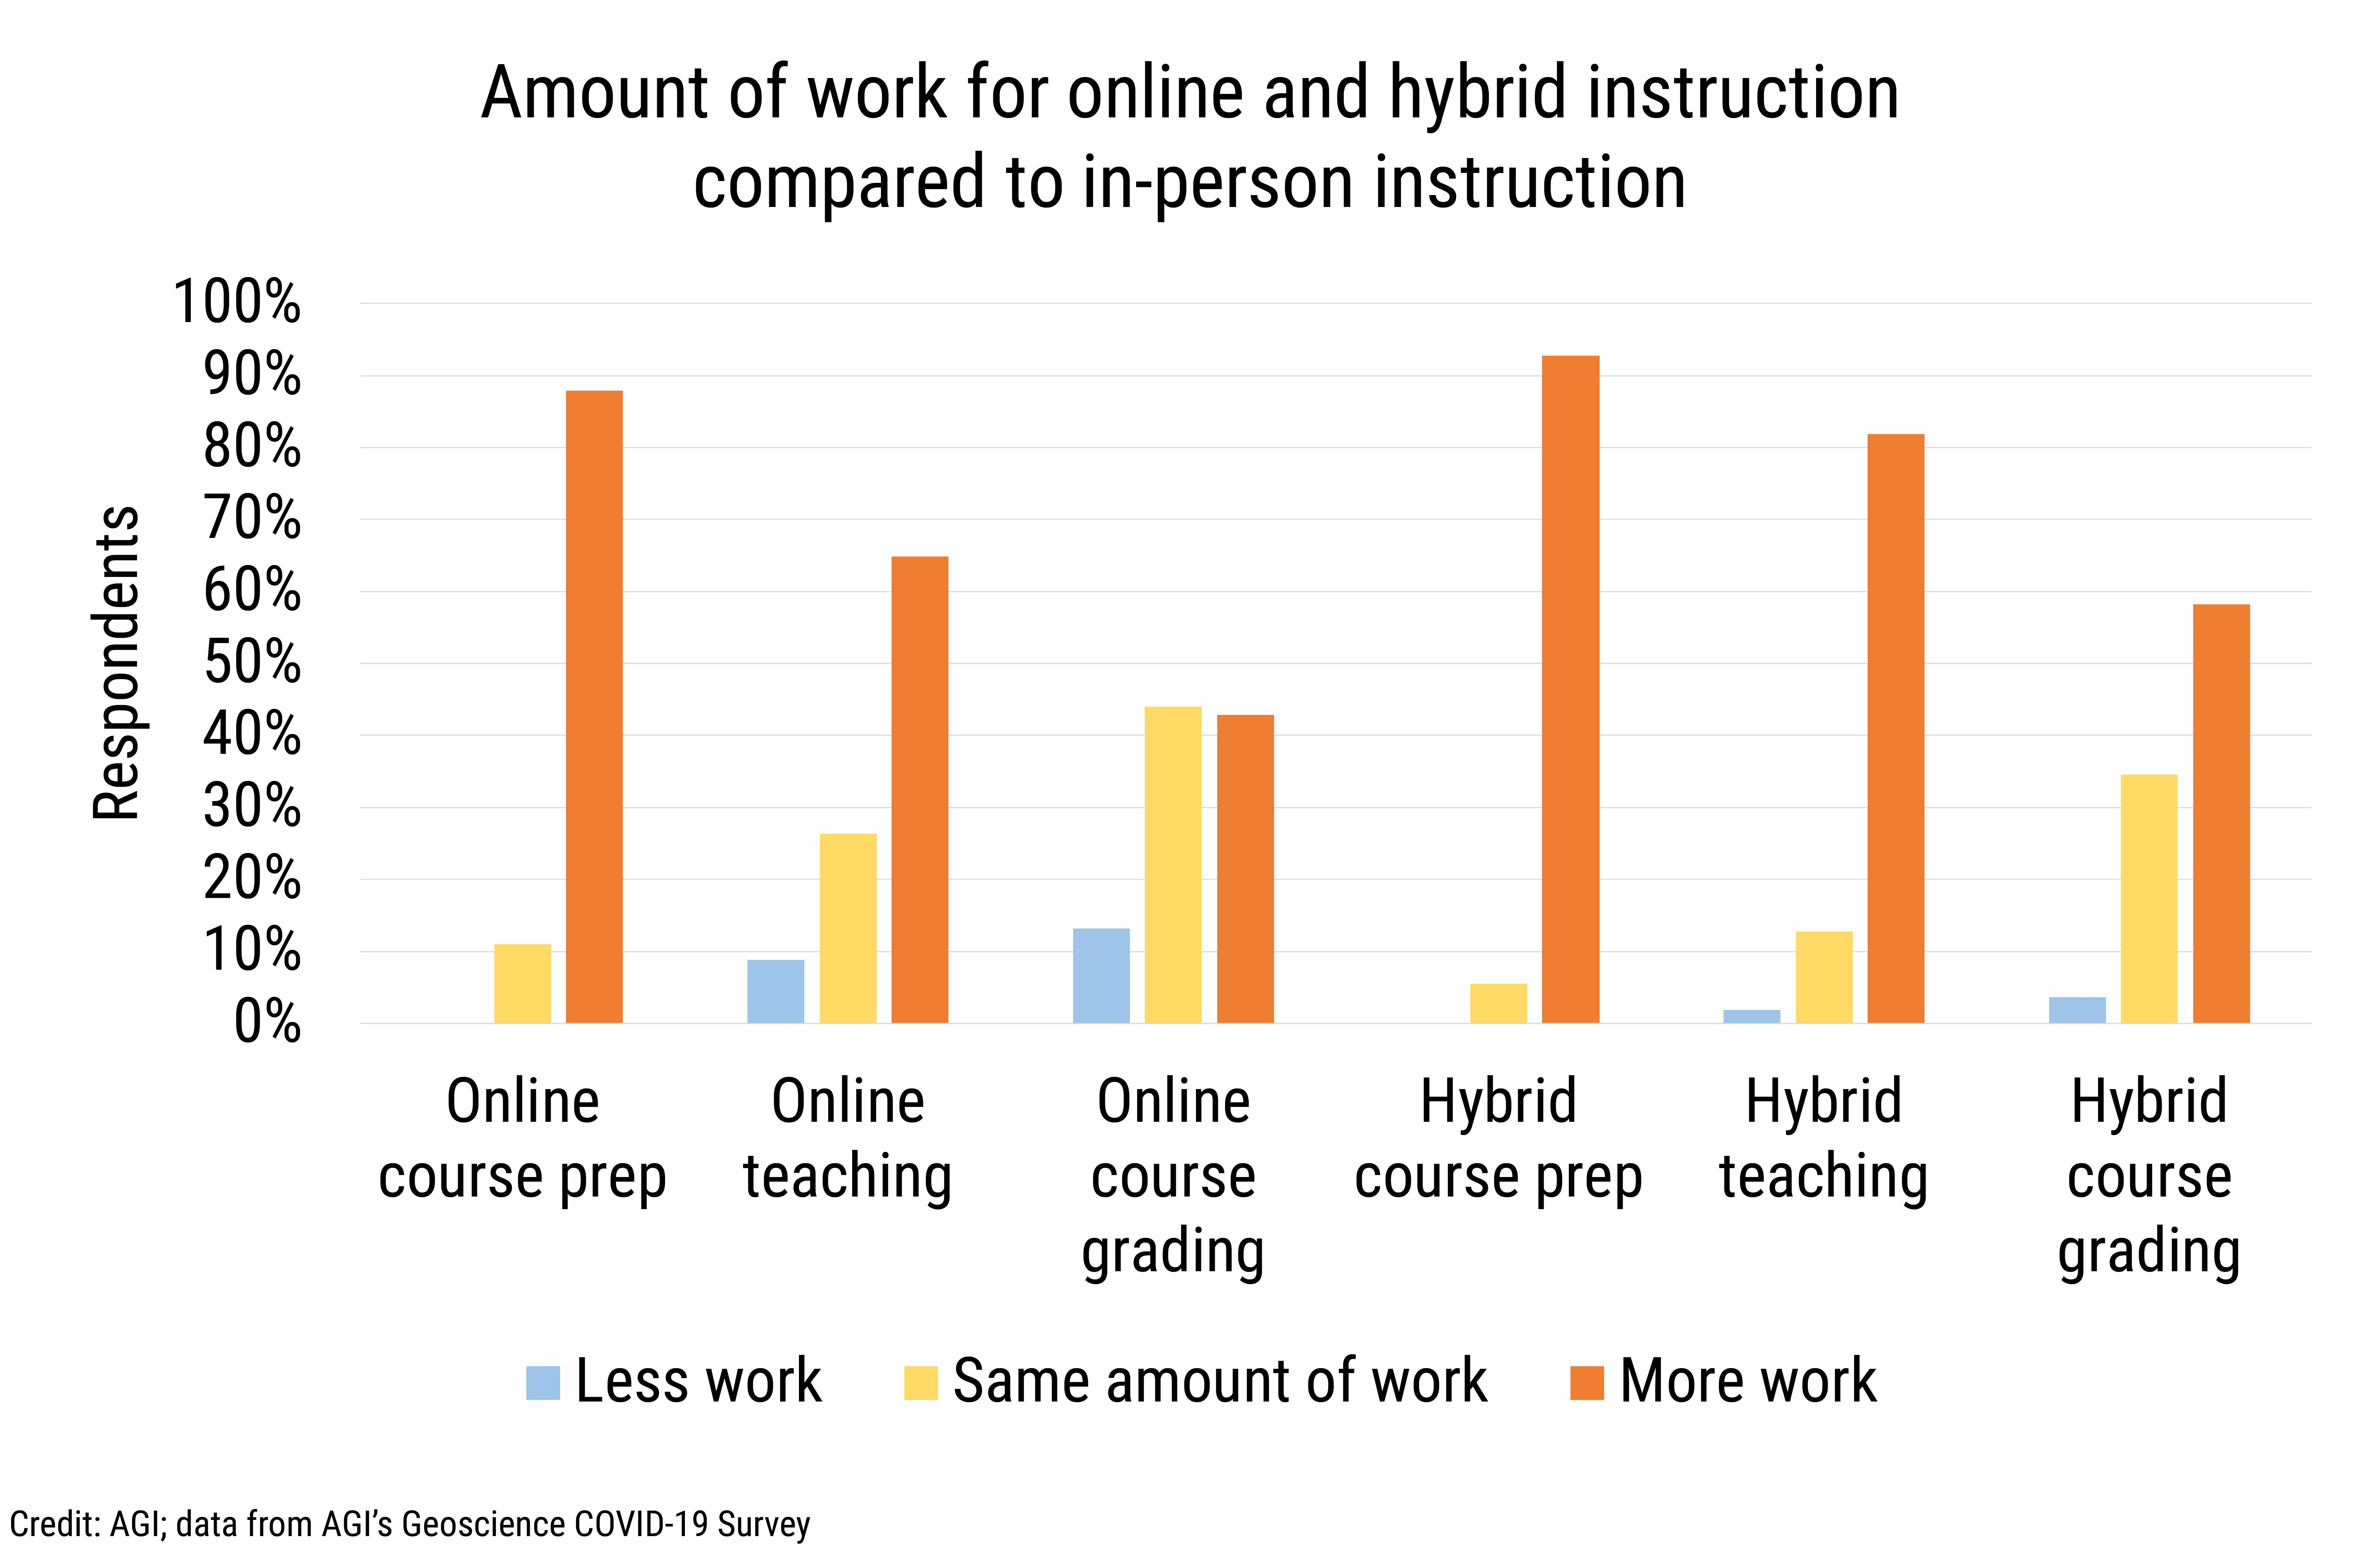 DB_2021-016 chart 05: Amount of work for online and hybrid instruction compared to in-person instruction (Credit: AGI; data from AGI's Geoscience COVID-19 Survey)